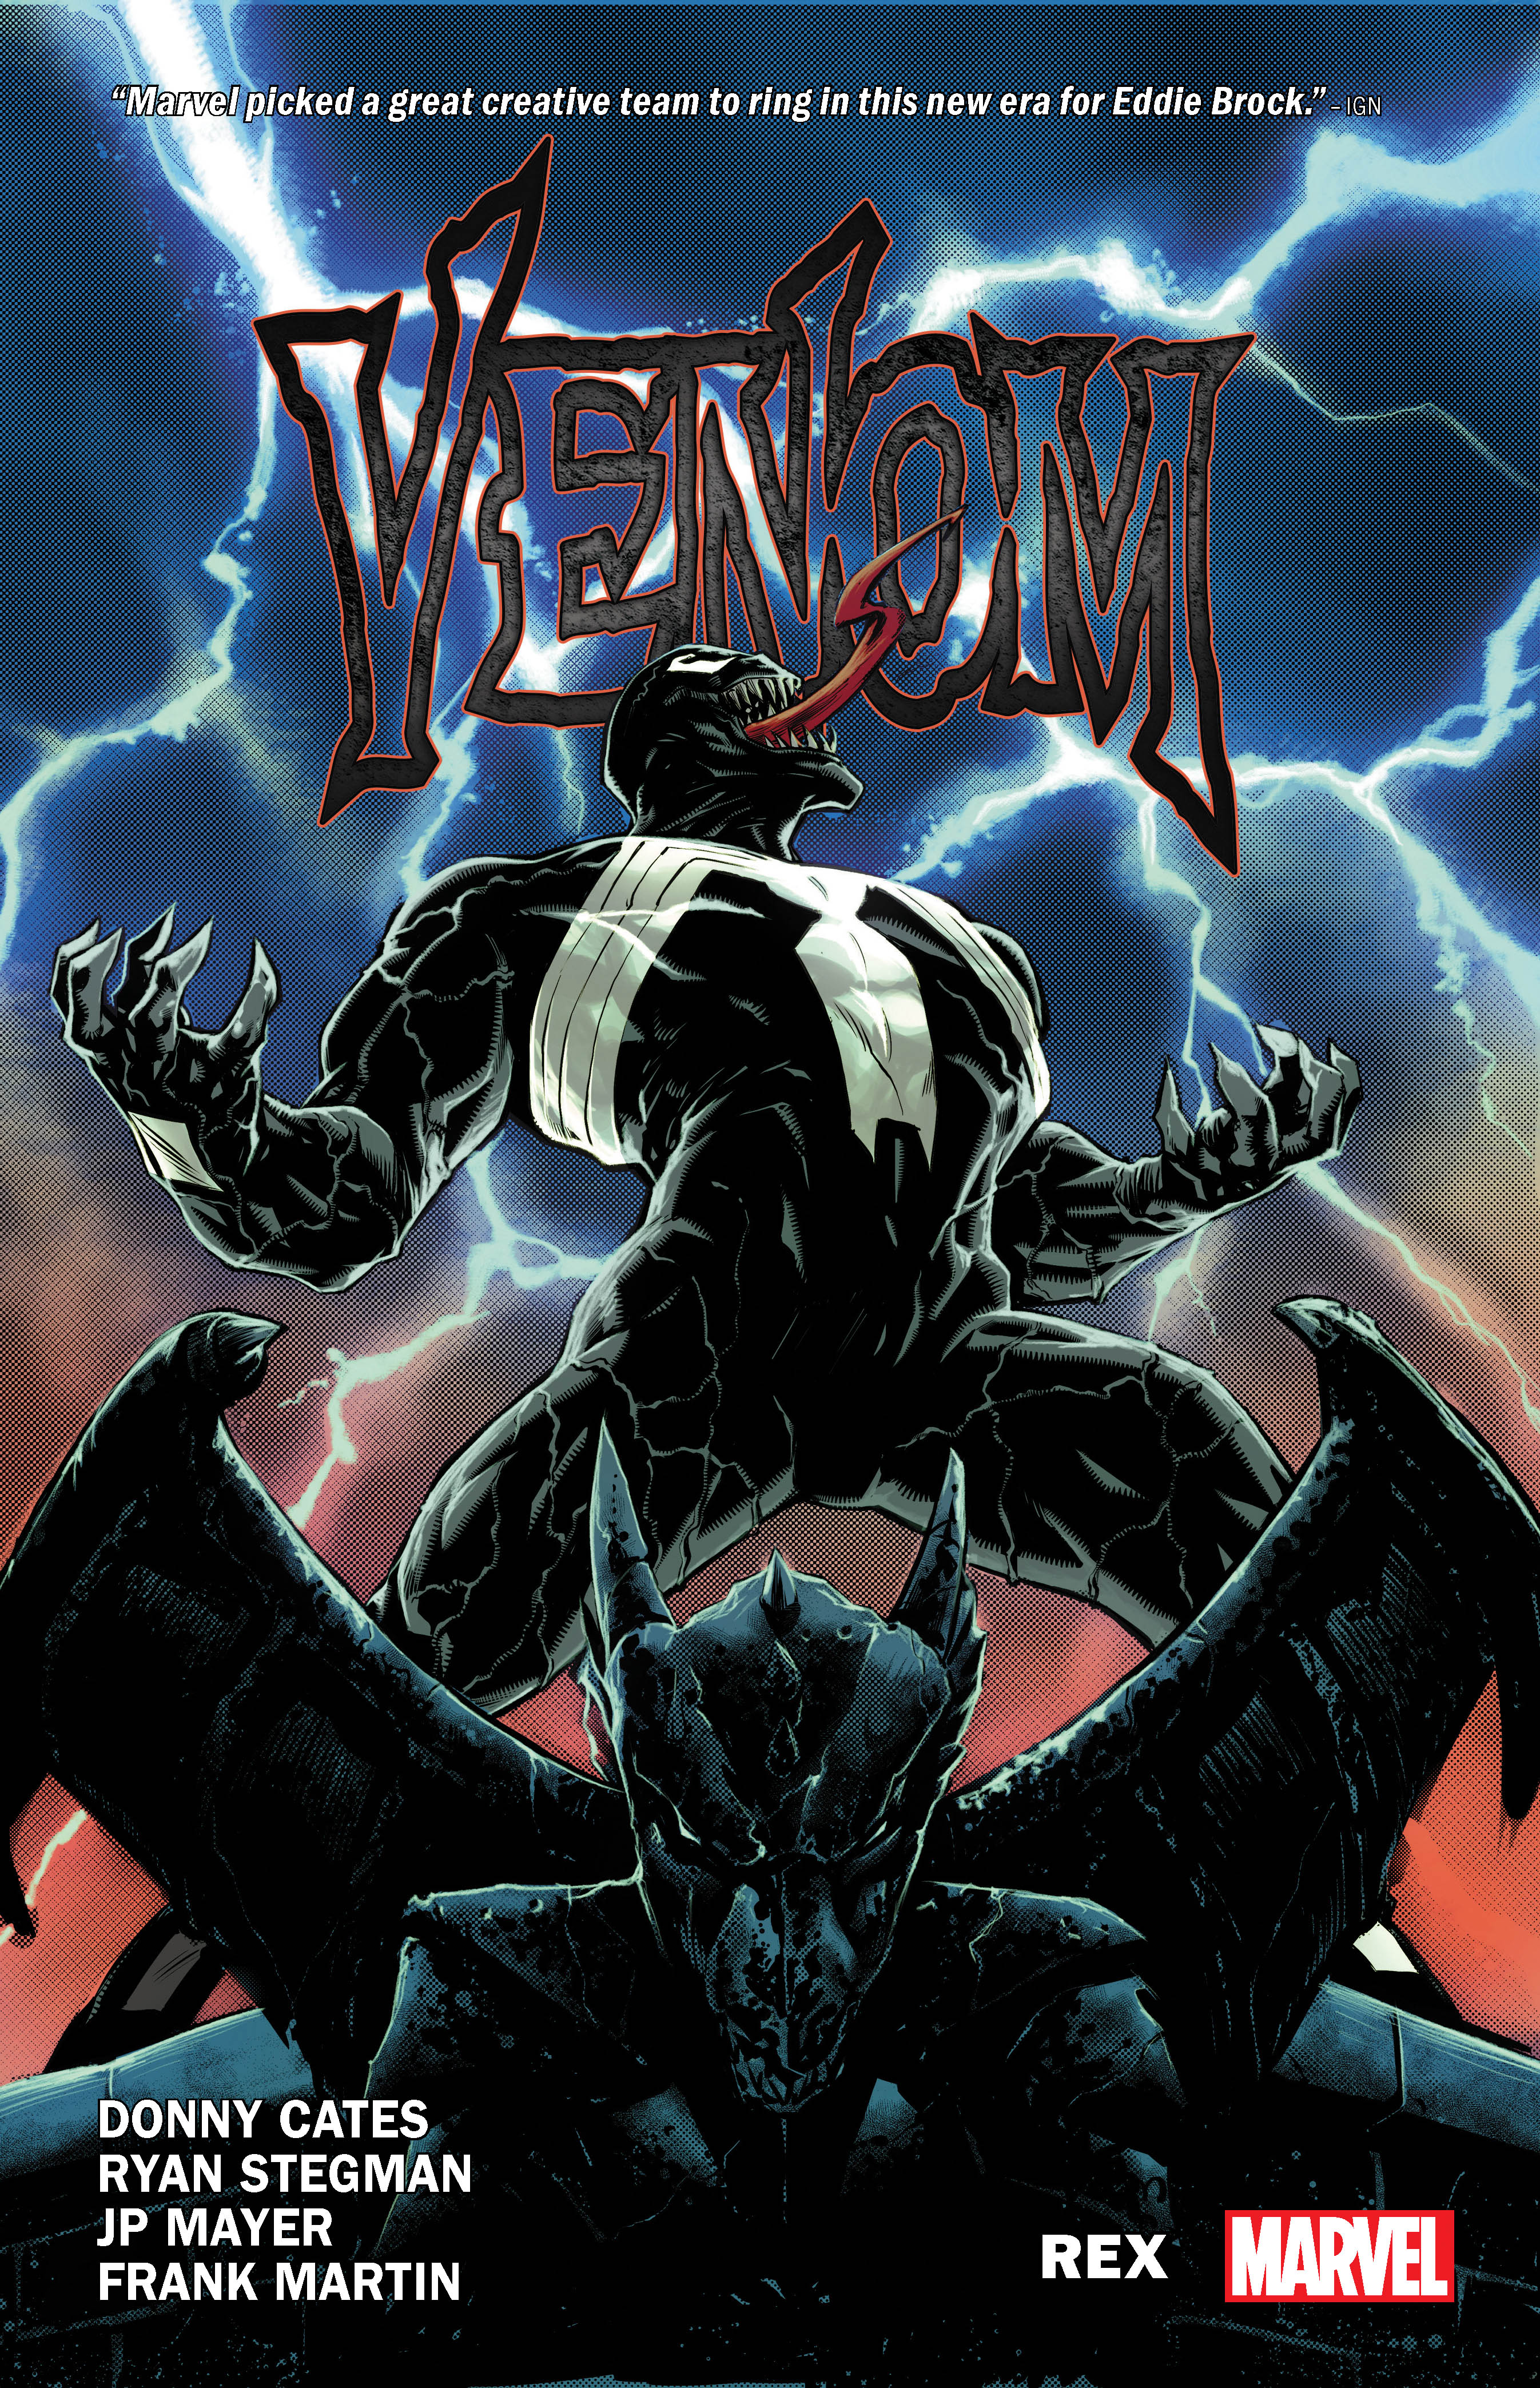 Venom by Donny Cates Vol. 1: Rex (Trade Paperback)